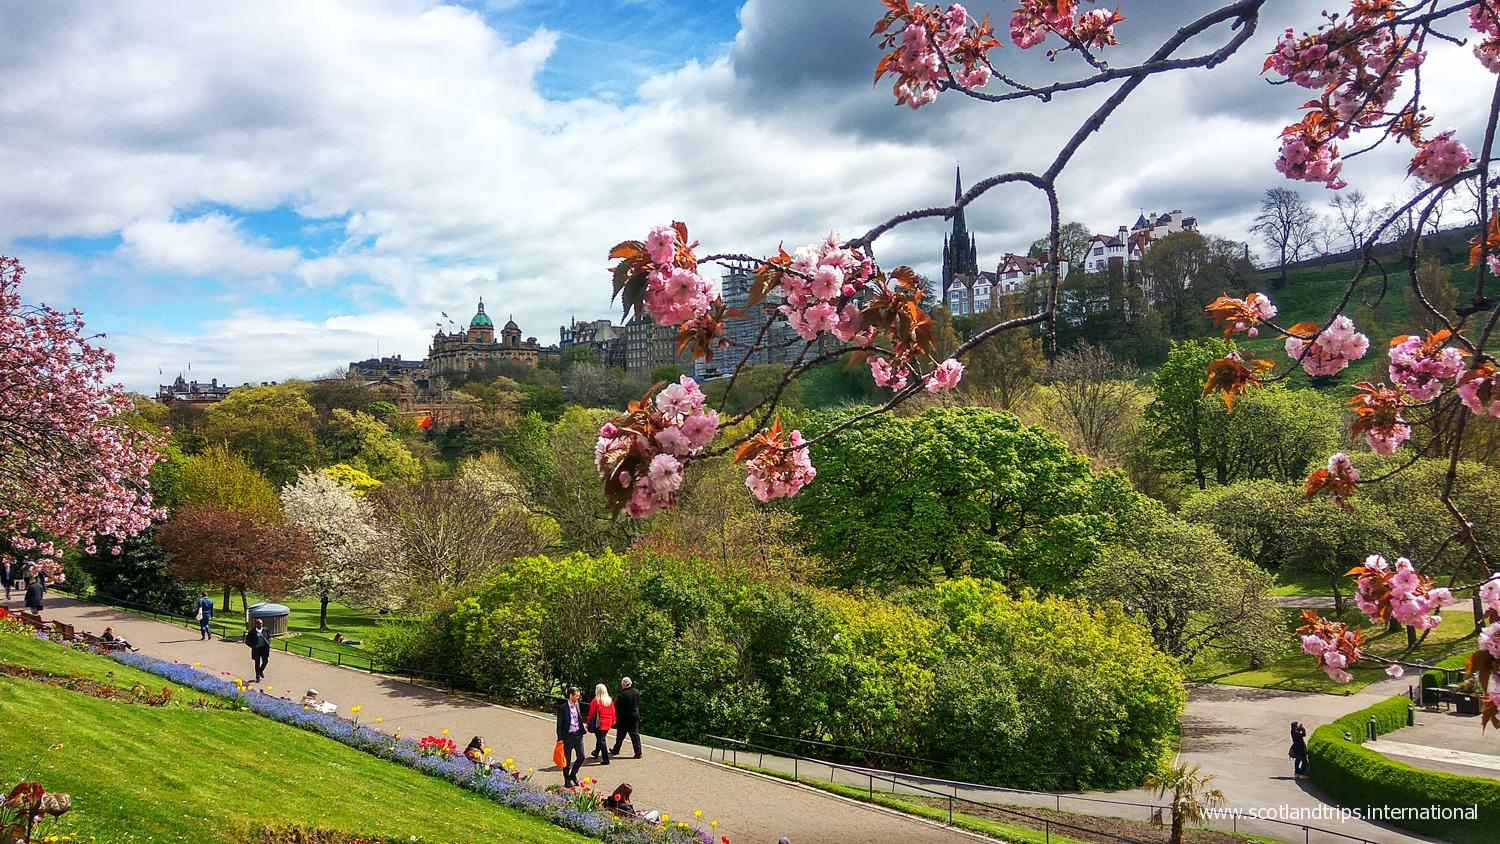 Tours, vacaciones y viajes - Tours por Edimburgo Scotlandtrips International